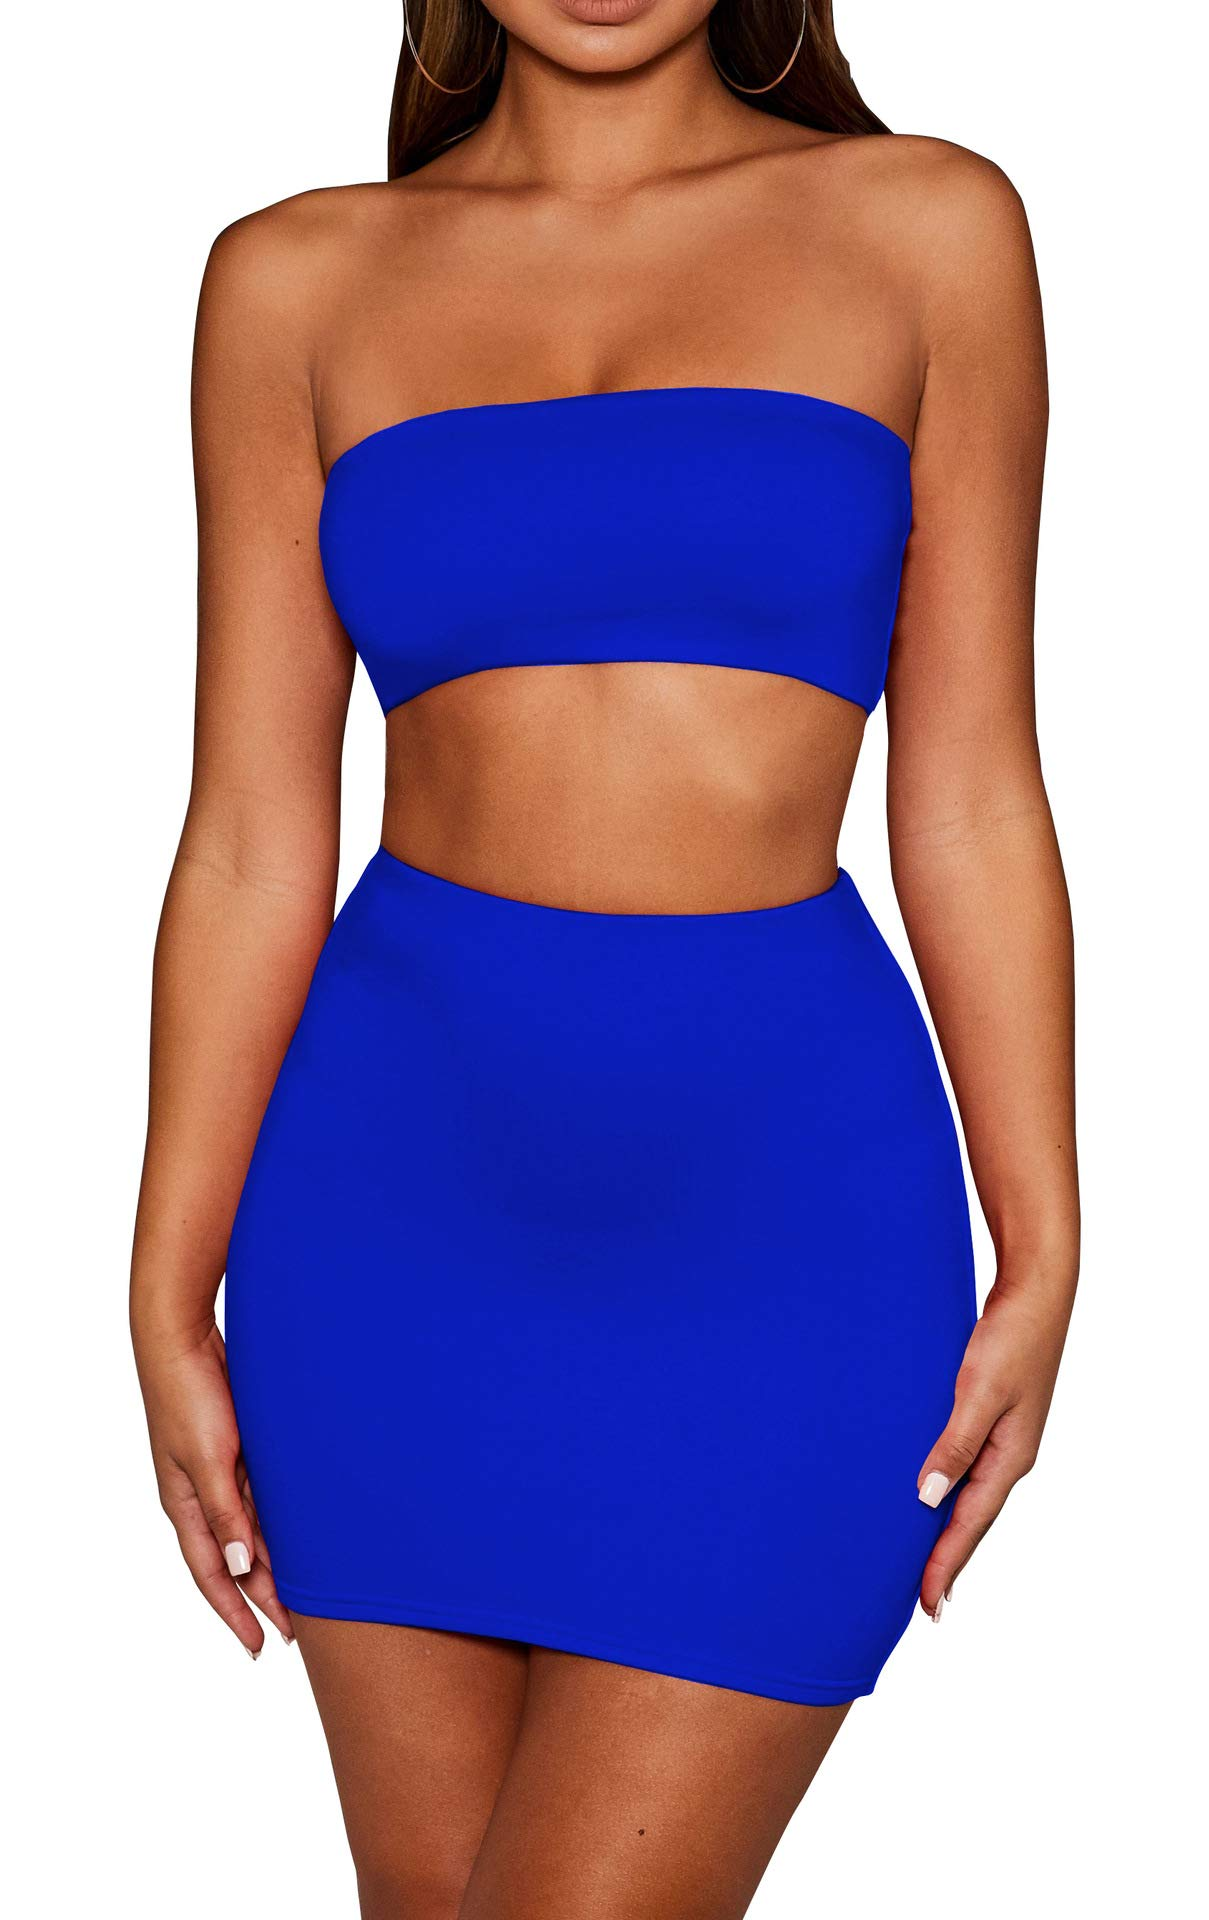 Available at Amazon: SKYVOICE Women's Sexy 2 Piece Outfits Tube Crop Top Skirt Set Bodycon Mini Dress